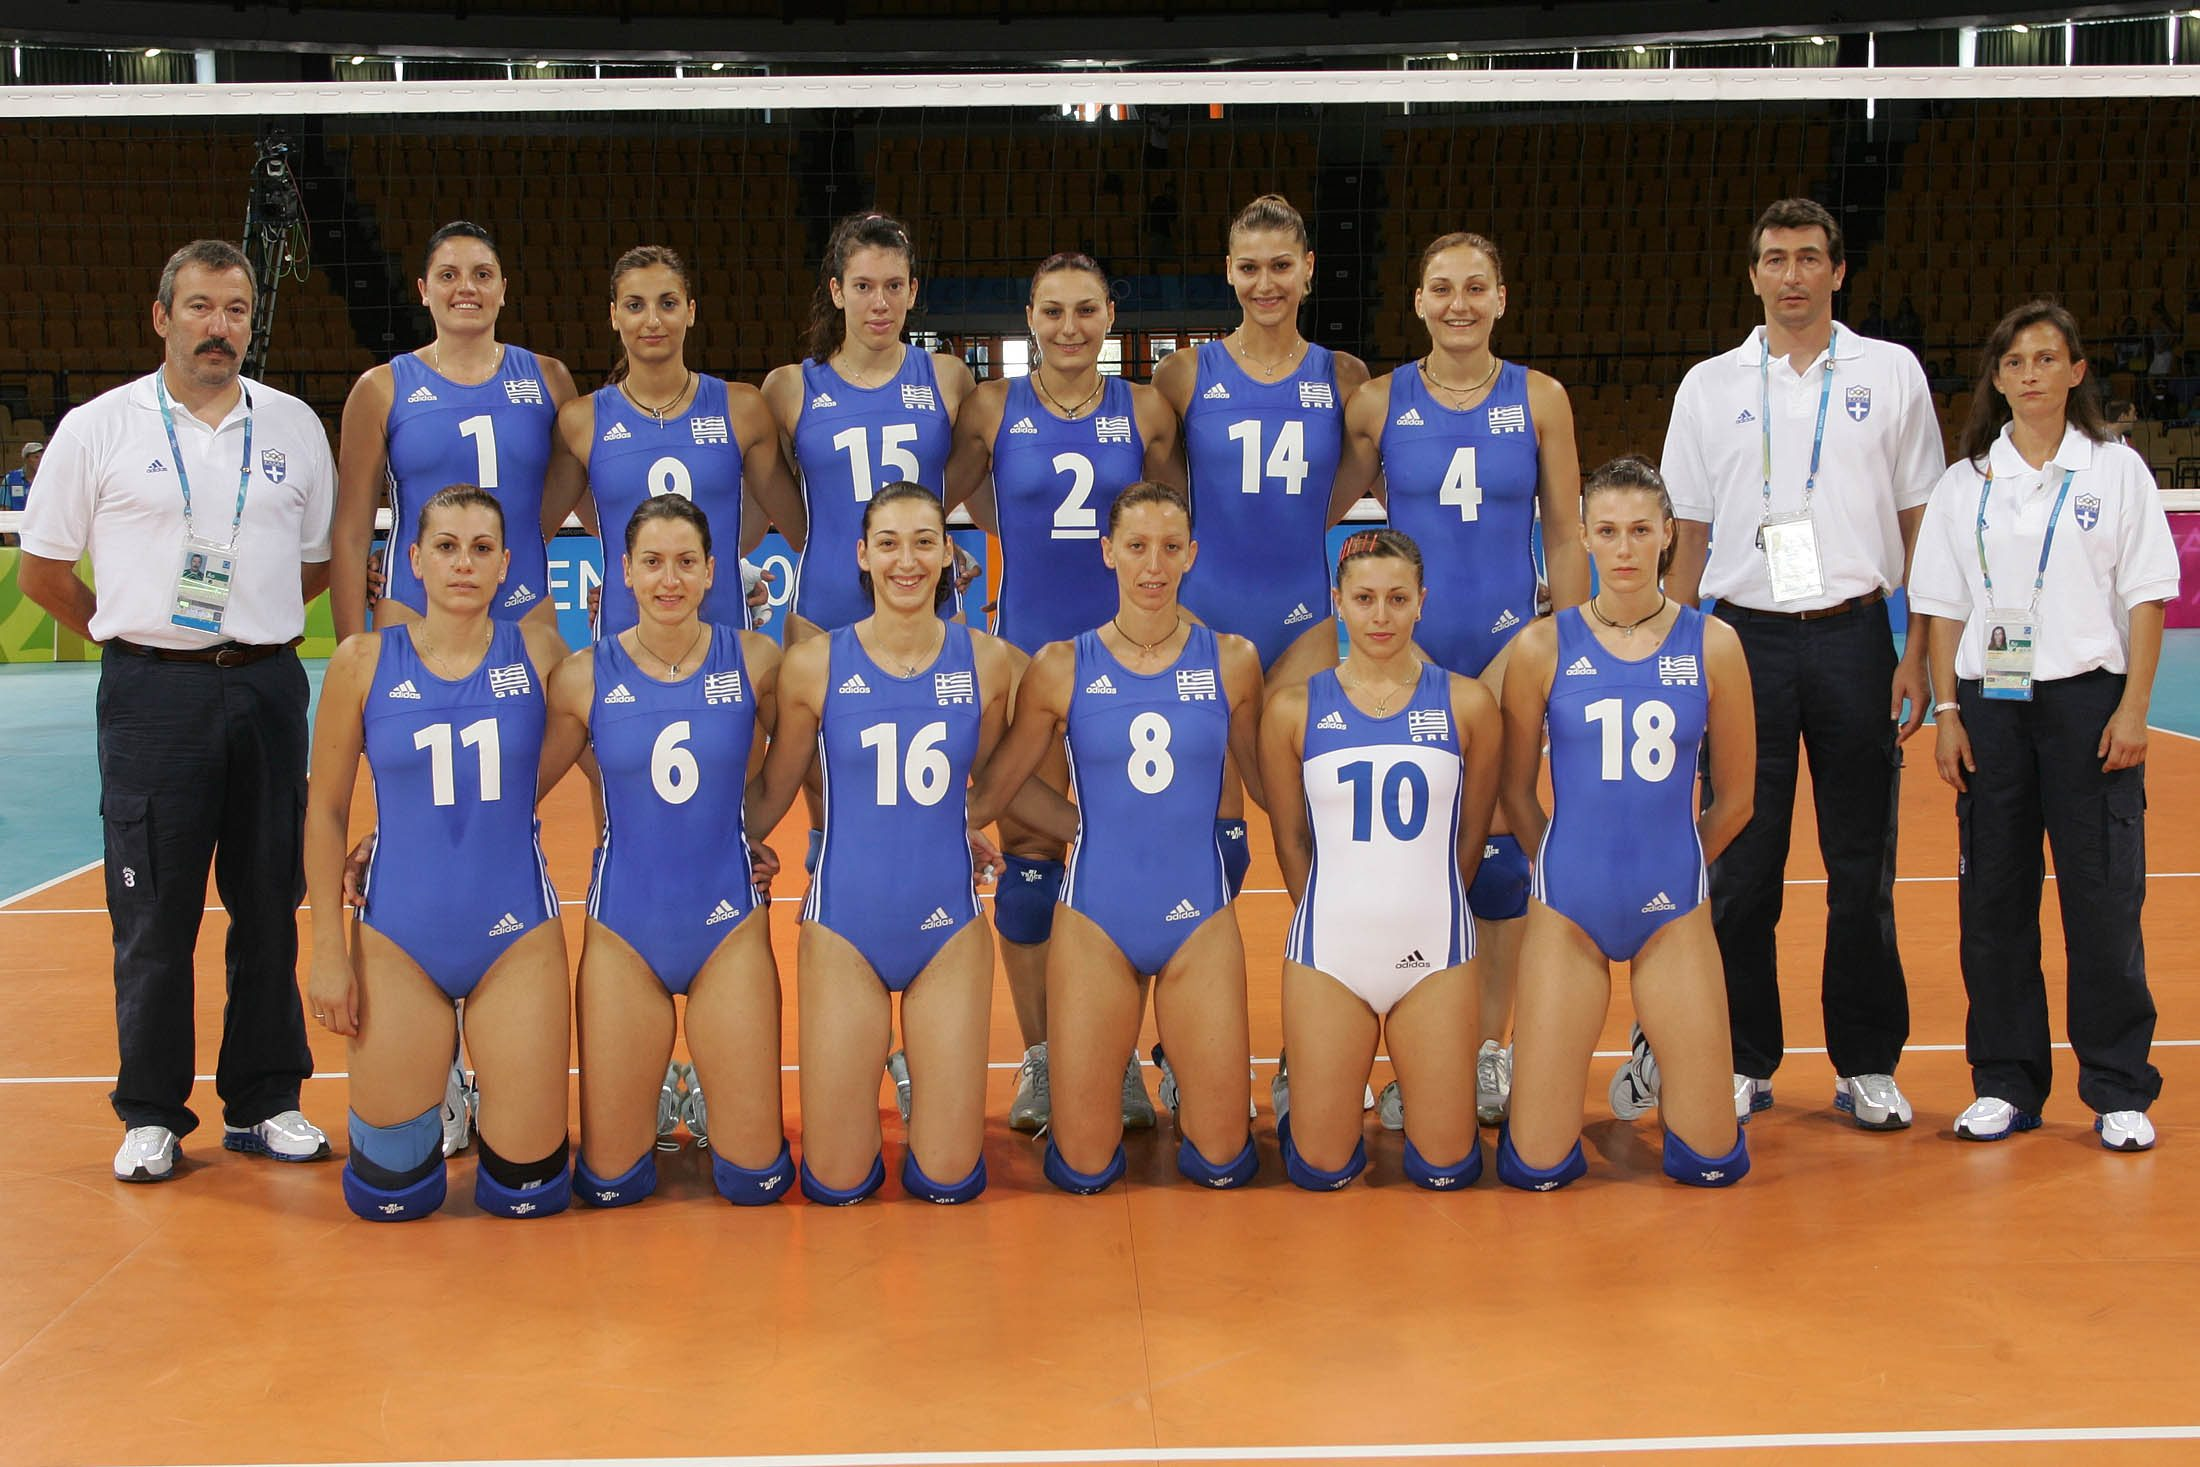 Volleyball olympic games 2004 photo gallery teams